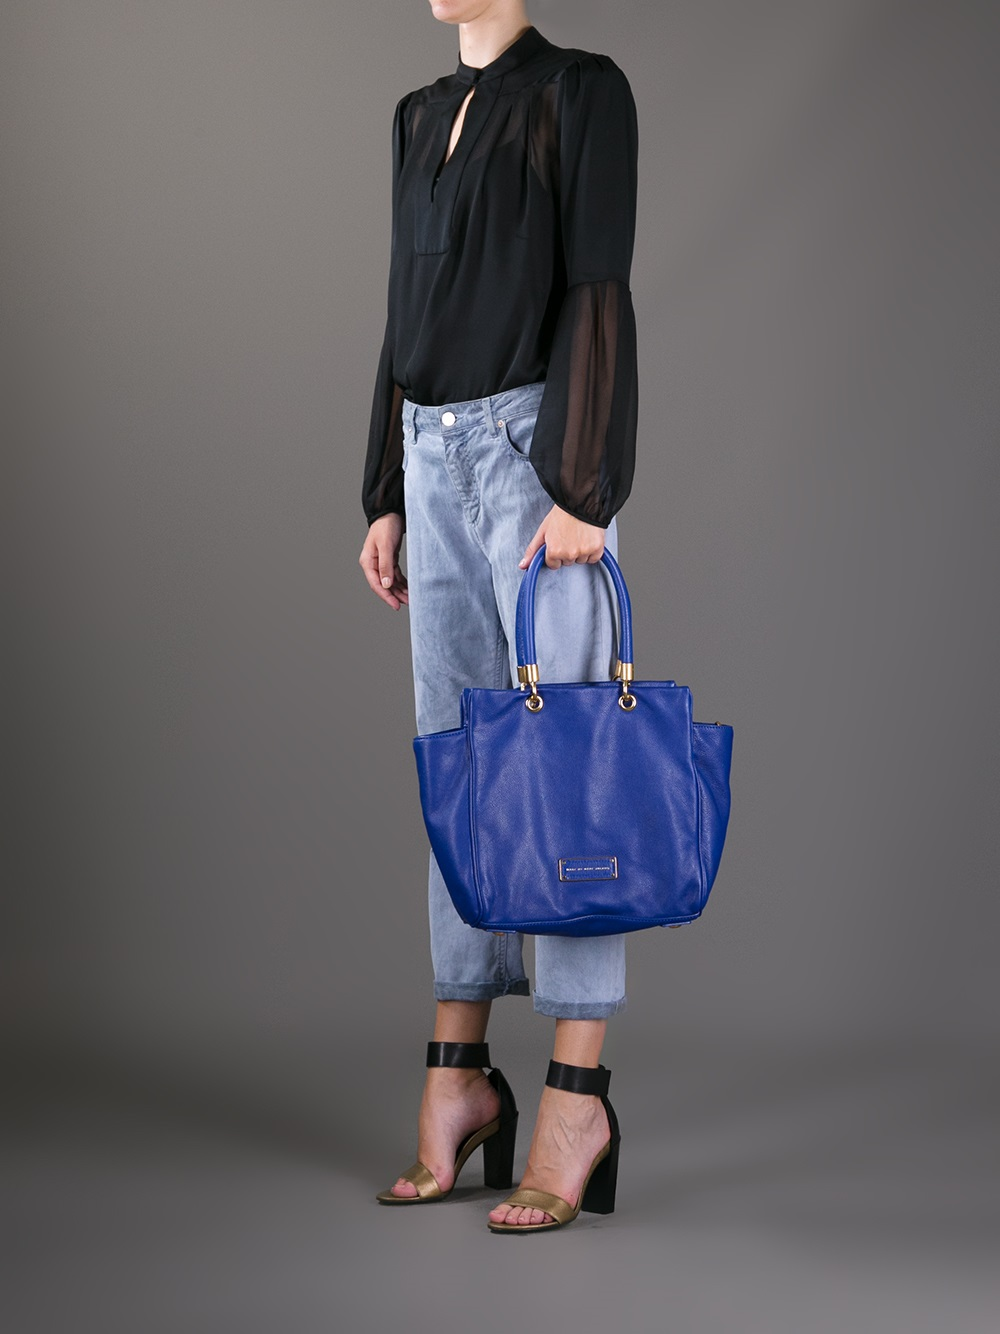 cf12596466 Gallery. Previously sold at: Farfetch · Women's Marc Jacobs Too Hot To  Handle